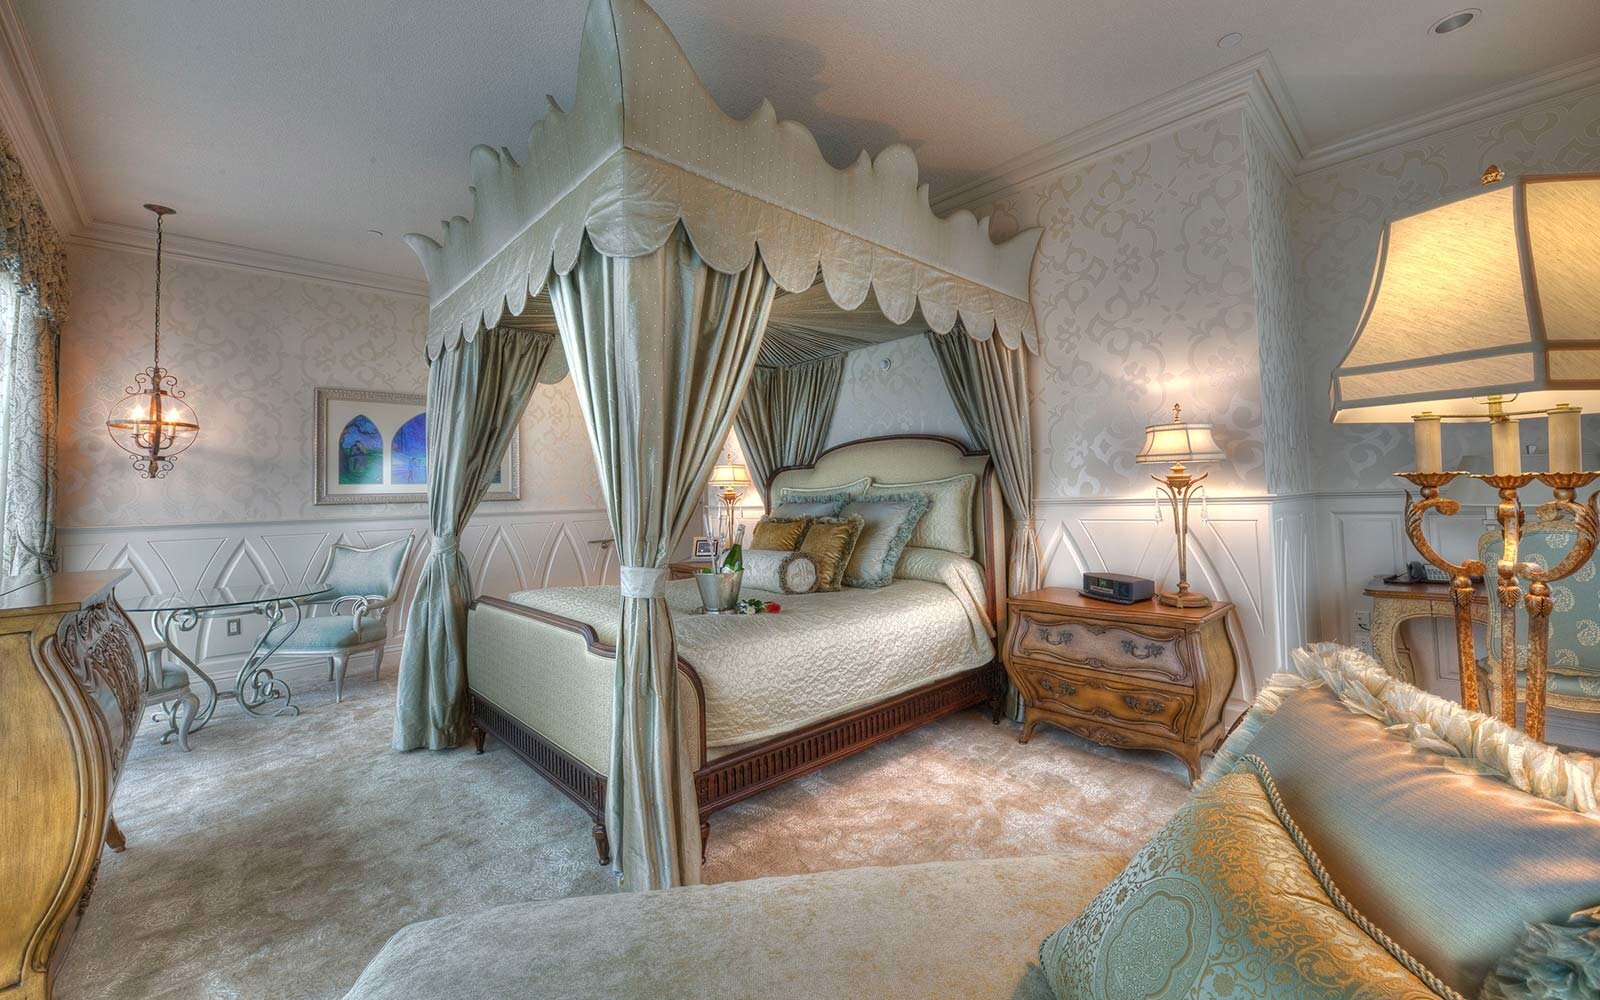 The Most Unique Theme Park Hotel Rooms in the World | Travel